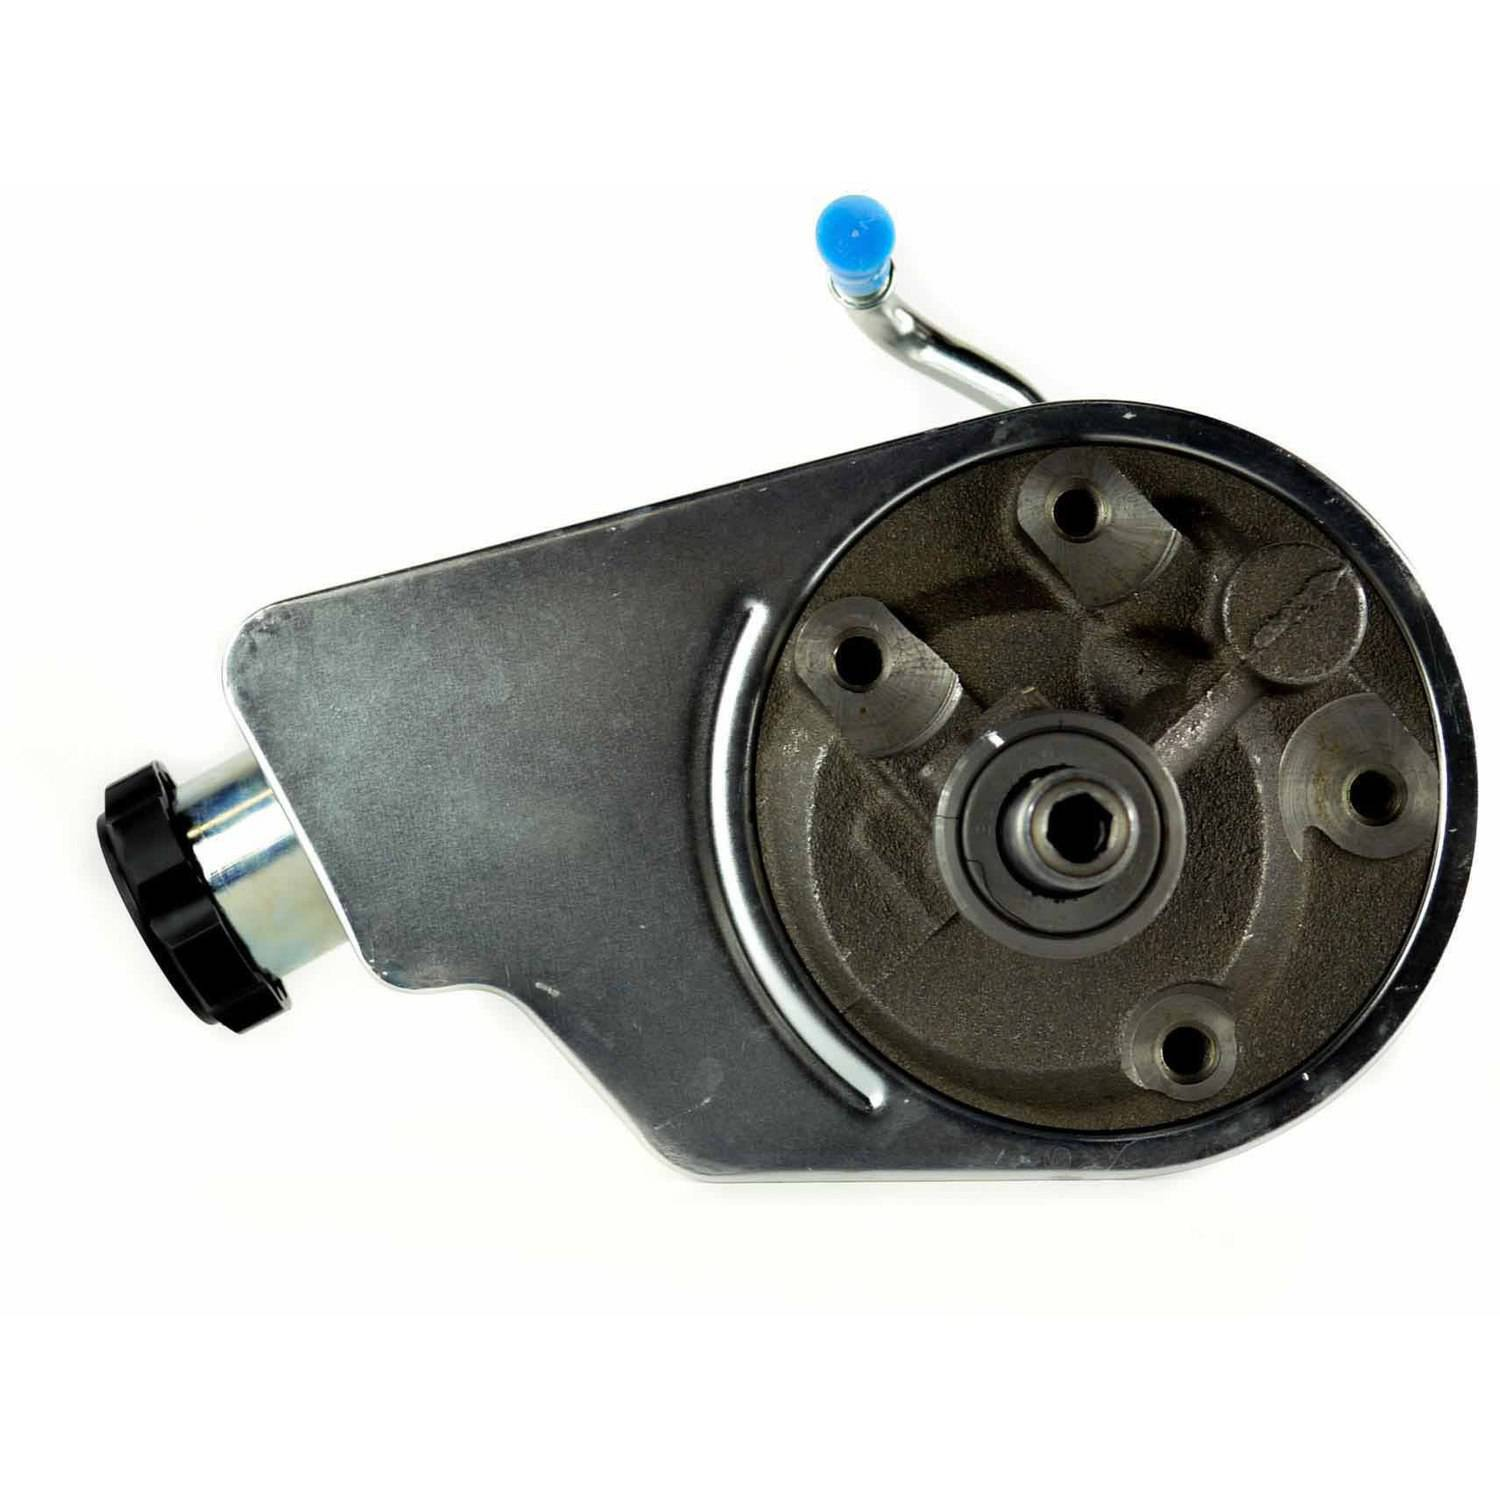 Motorcraft Window Lift Motor, #WLM15, CR20